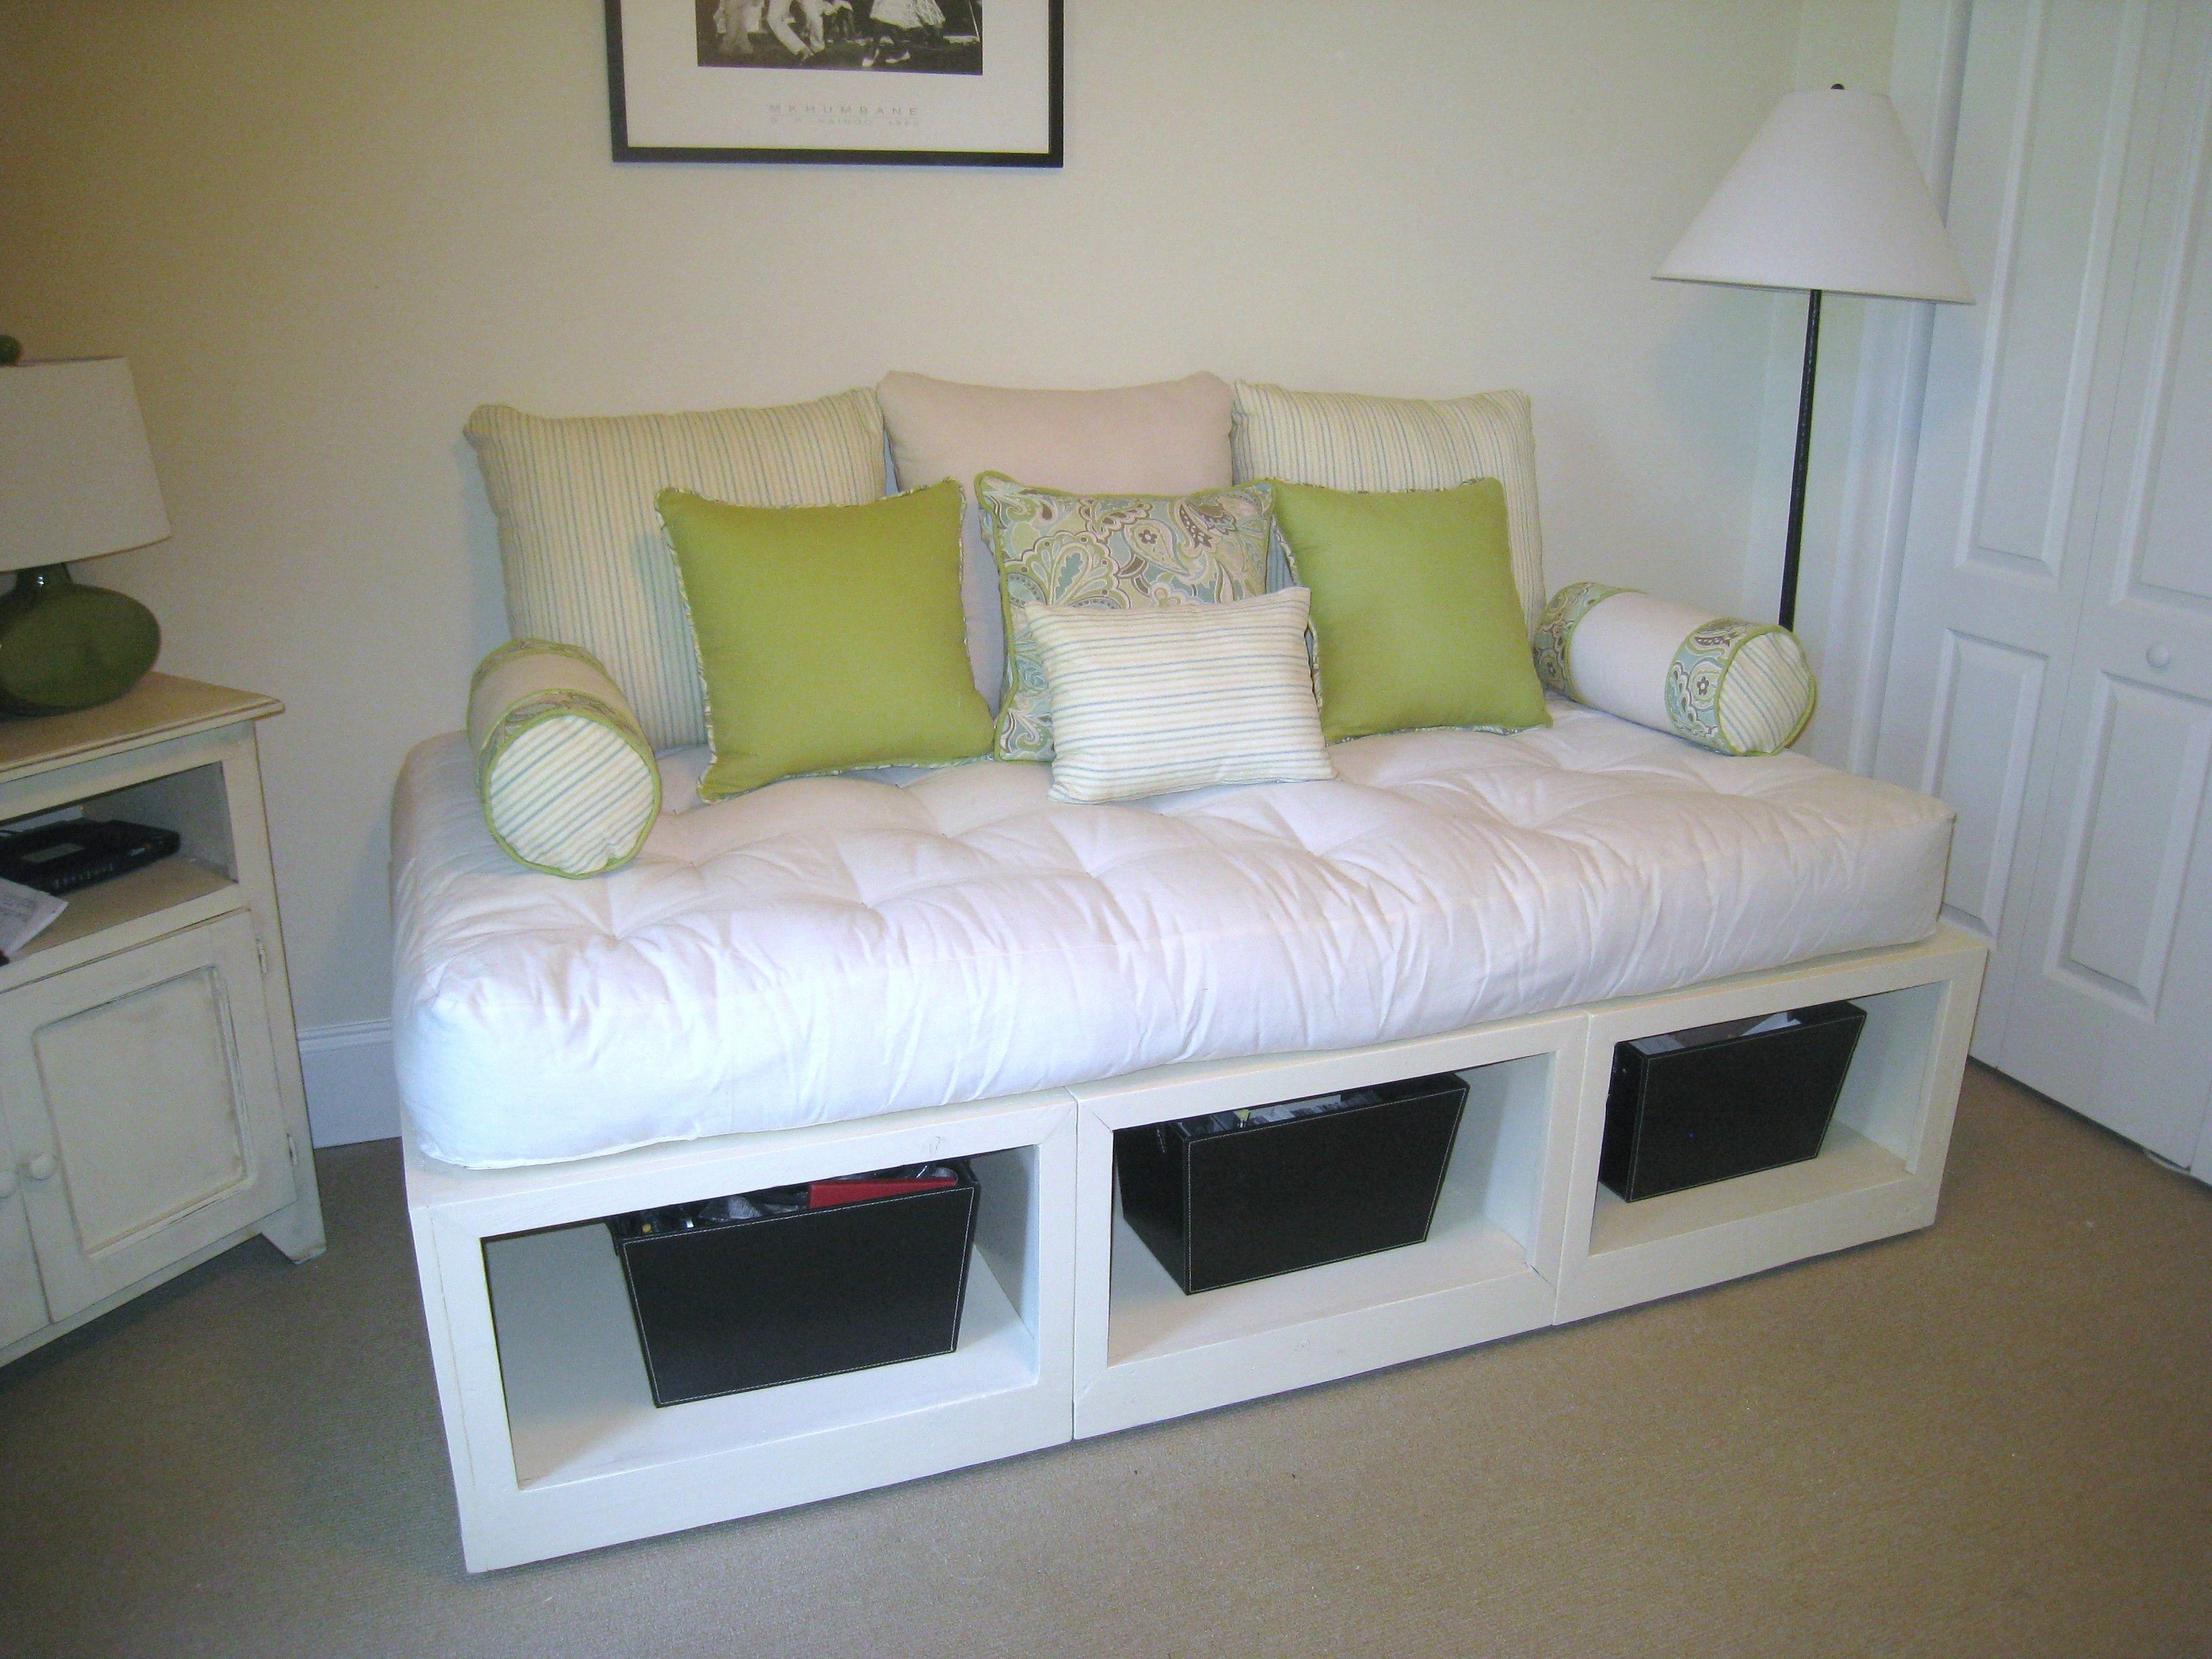 daybed with file drawers Google Search Home fice